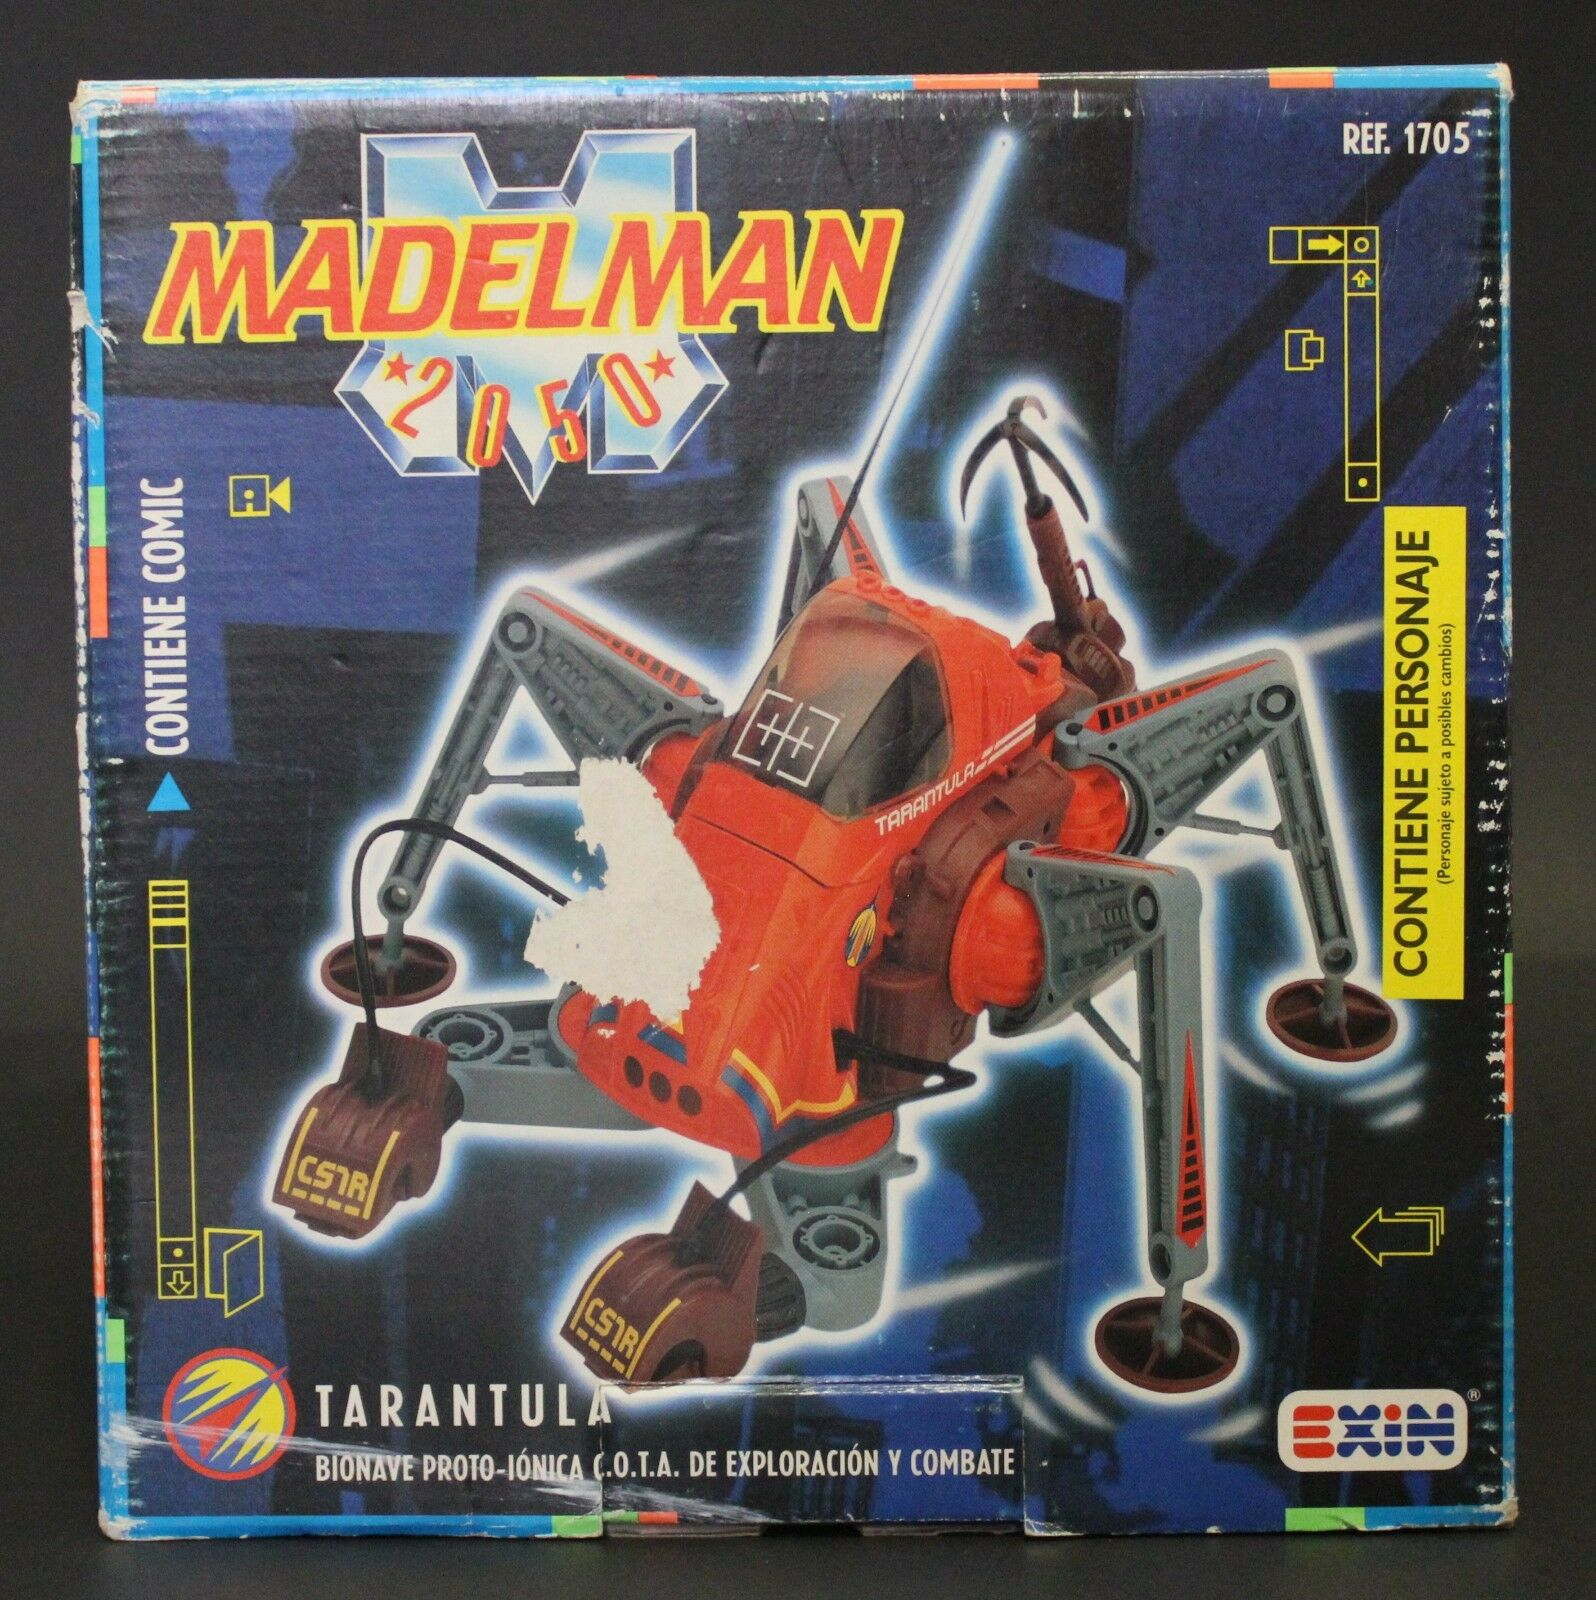 1989 Exin 3-3 4  Madelman 2050 TARANTULA vehicle IN G2 BOX VHTF no figure